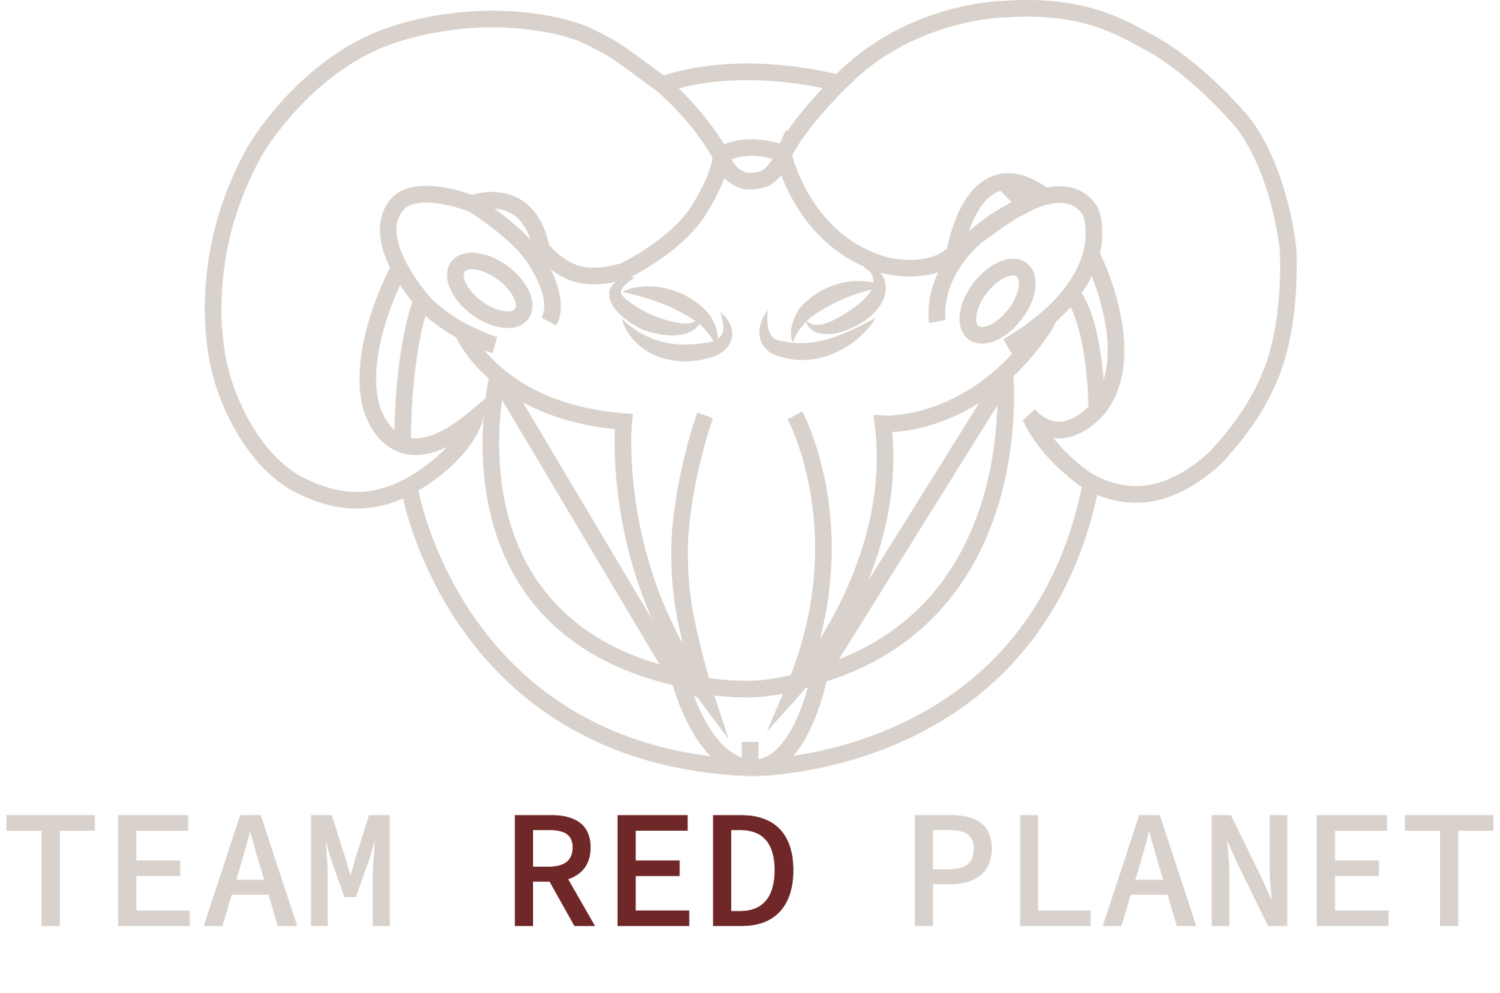 TEAM RED PLANET